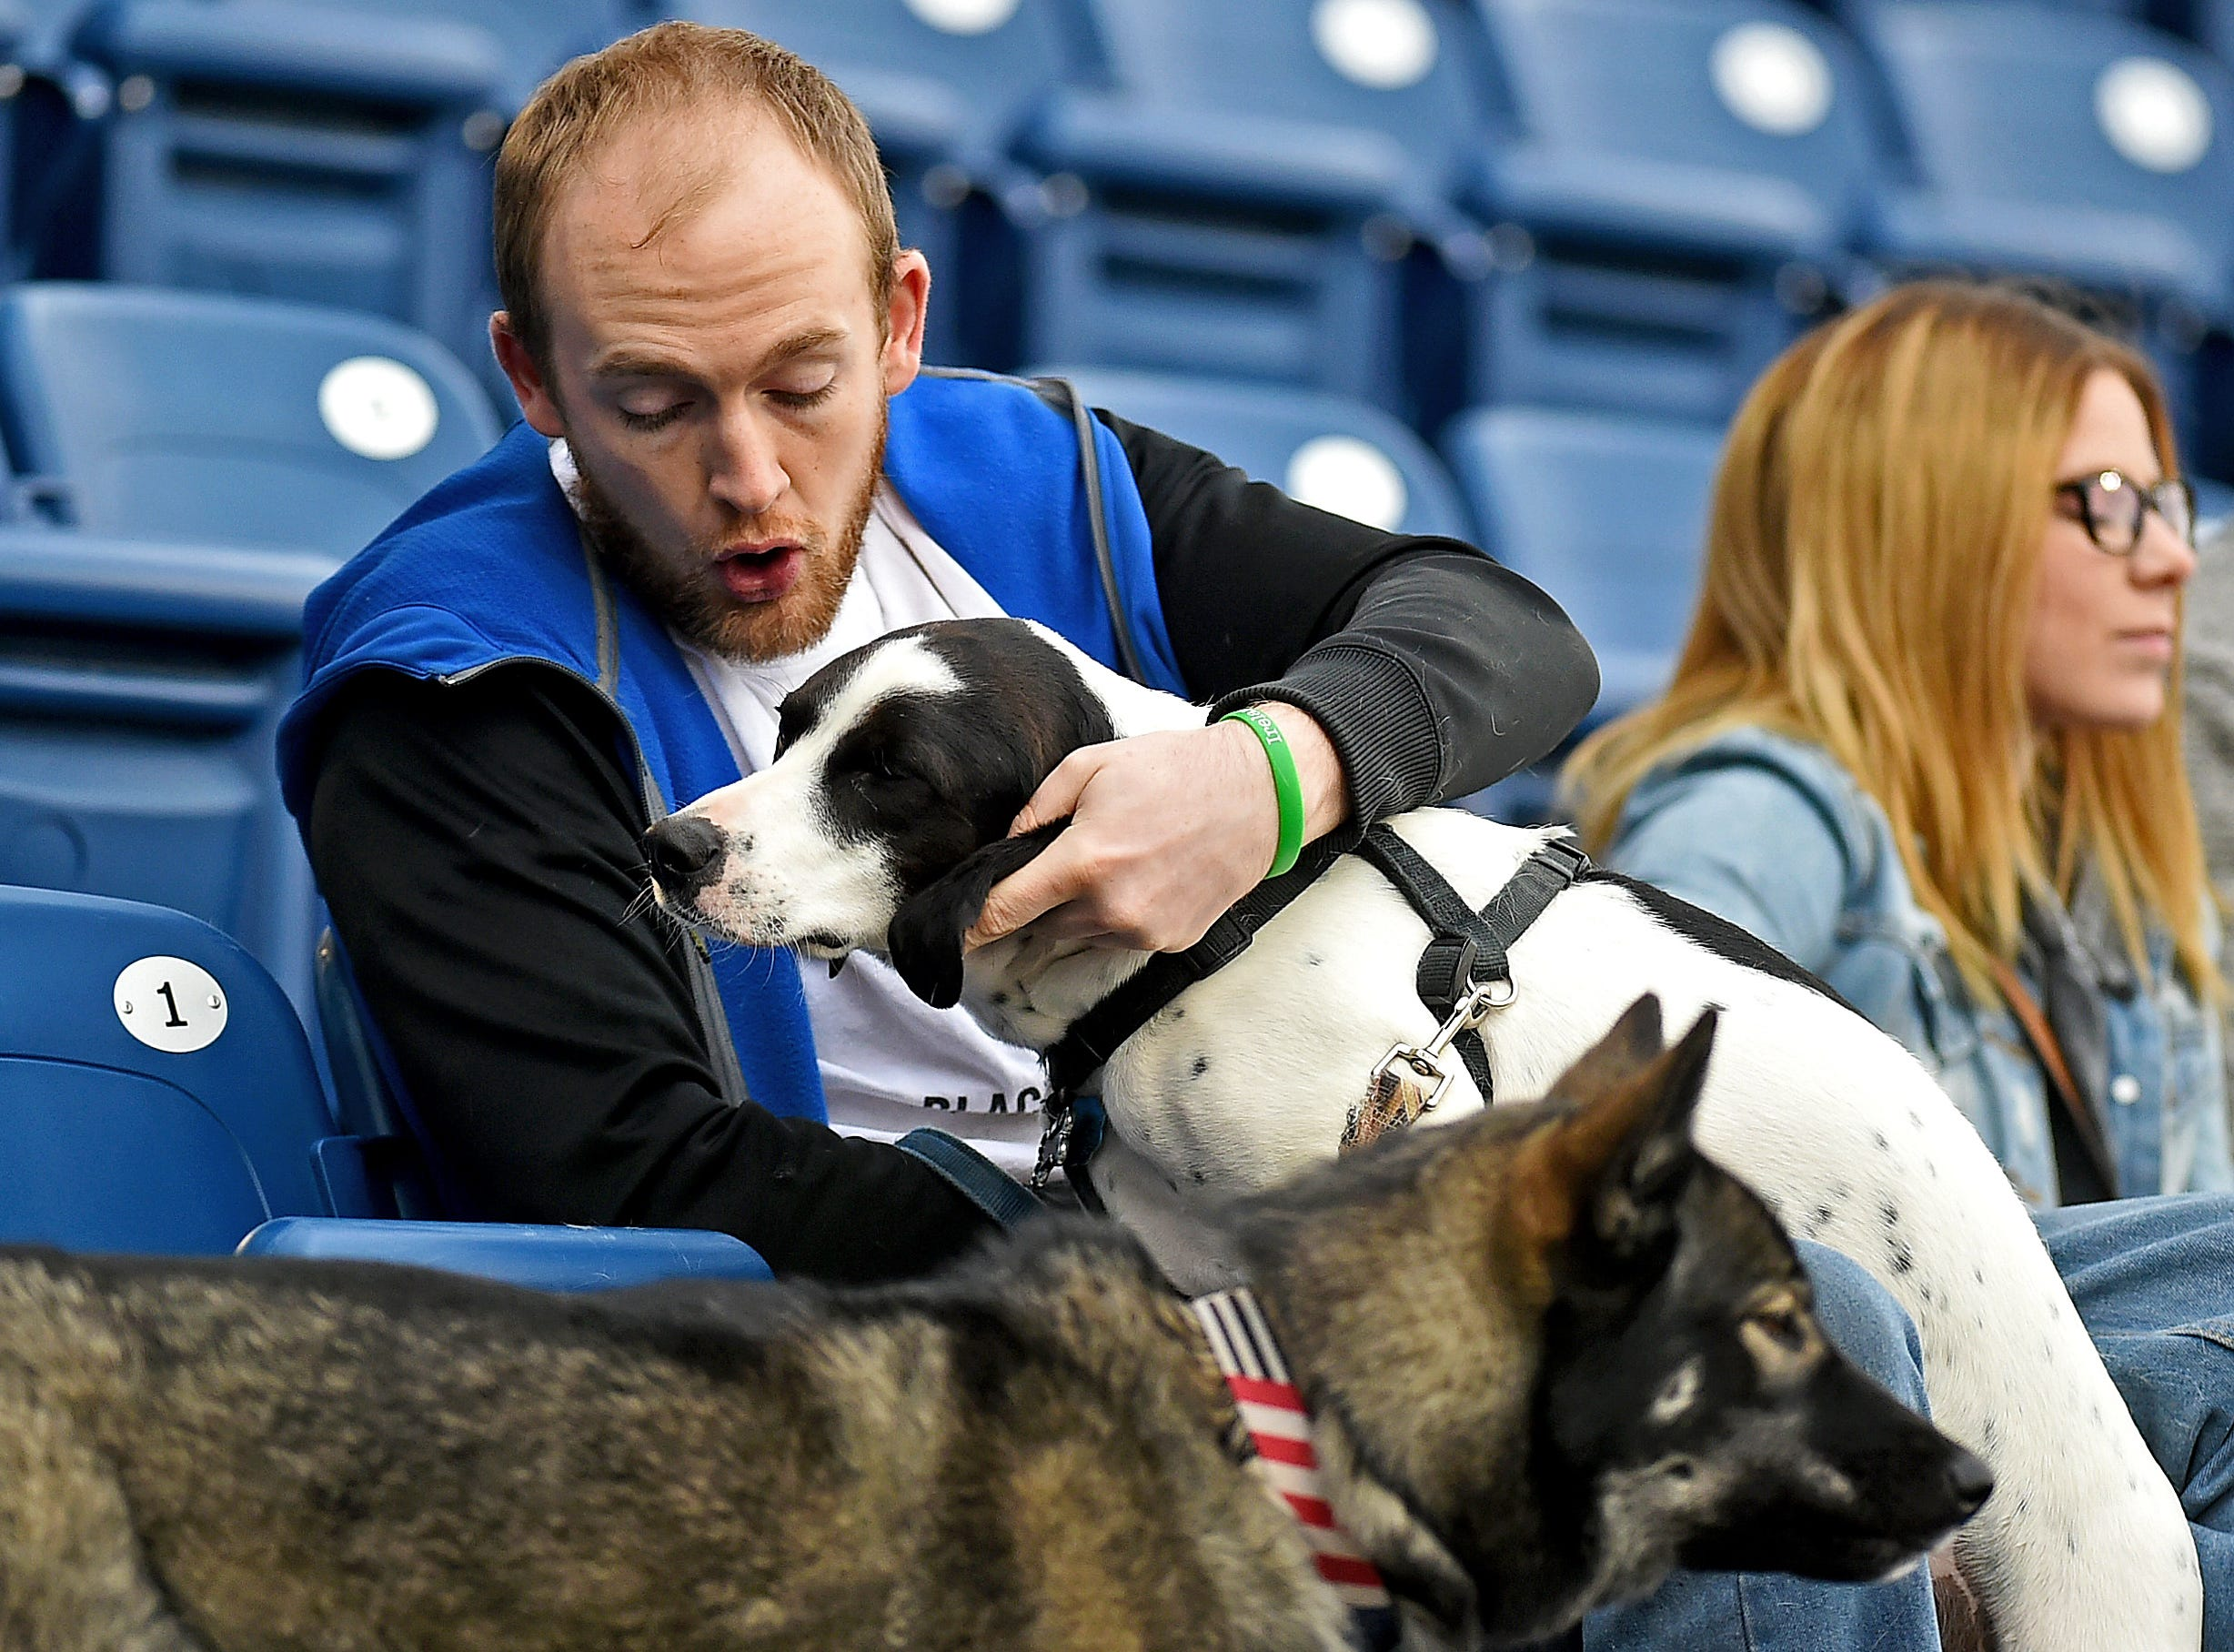 Ryan Connelly with dogs Duke and Mercedes during Mutt Monday as the Binghamton Rumble Ponies hosted the Akron RubberDucks at NYSEG Stadium, April 29, 2019.